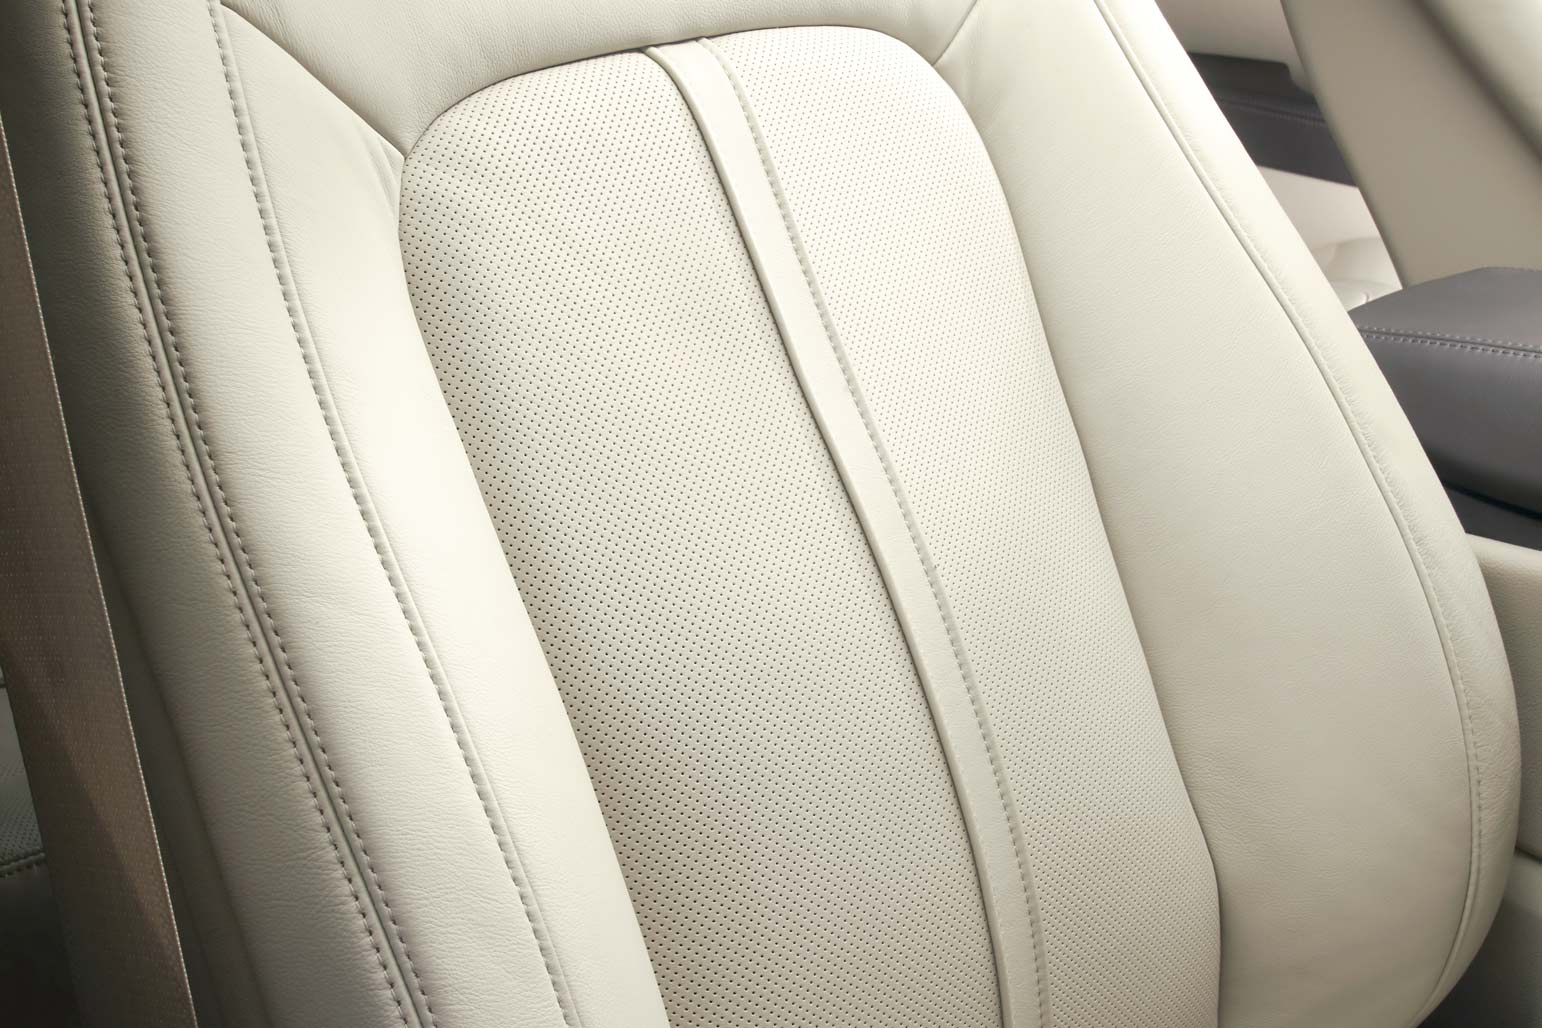 New Lincoln MKX Interior image 2